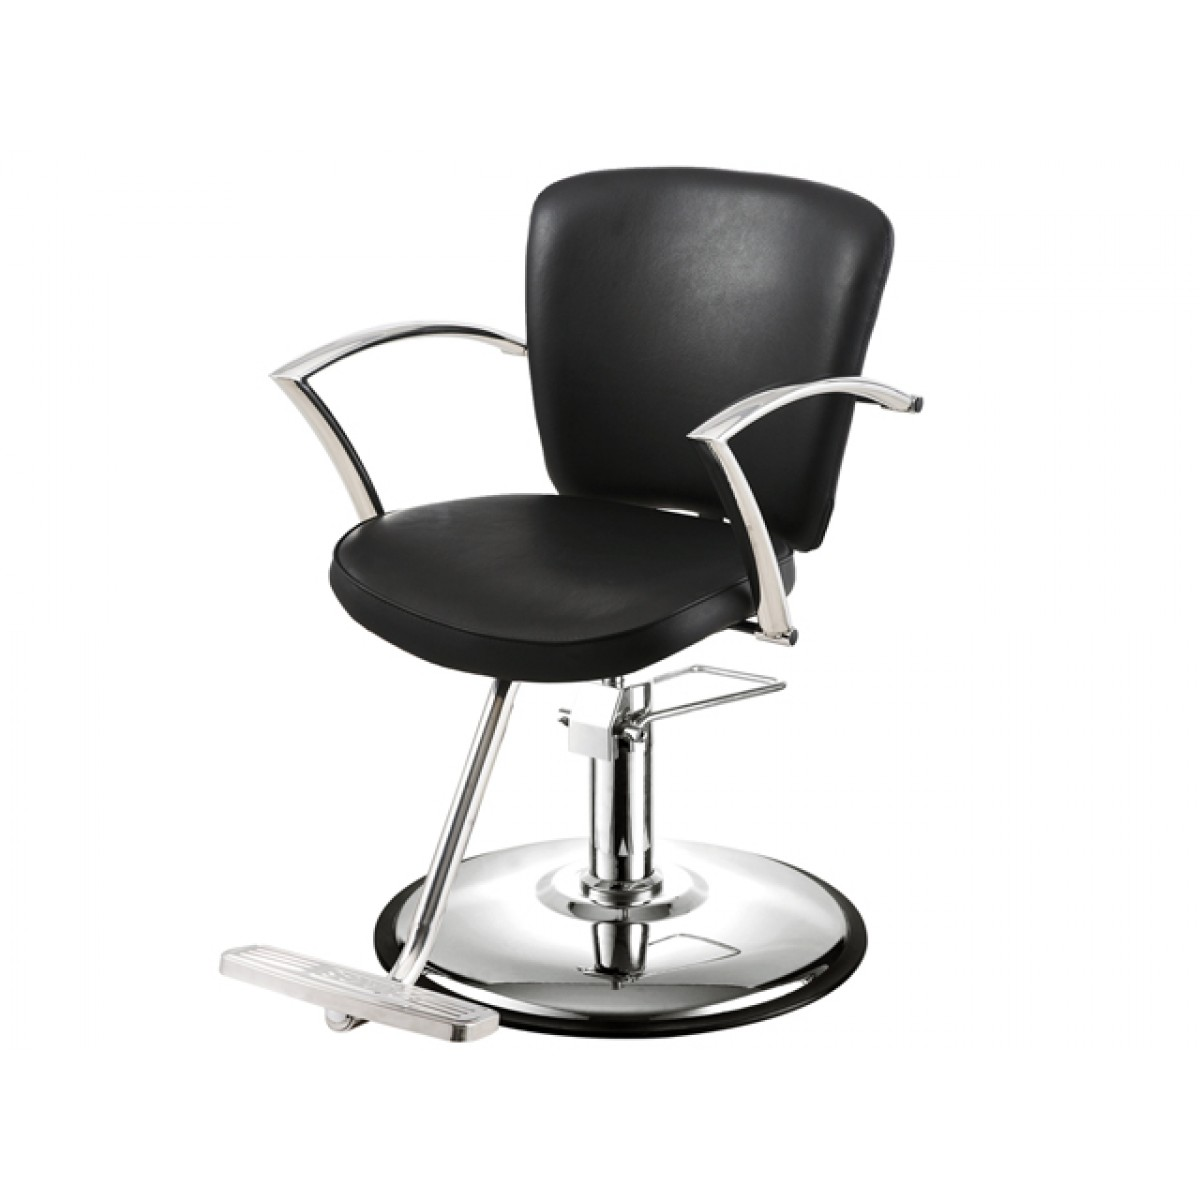 Ags beauty salon equipment salon furniture chairs for Accessories for beauty salon